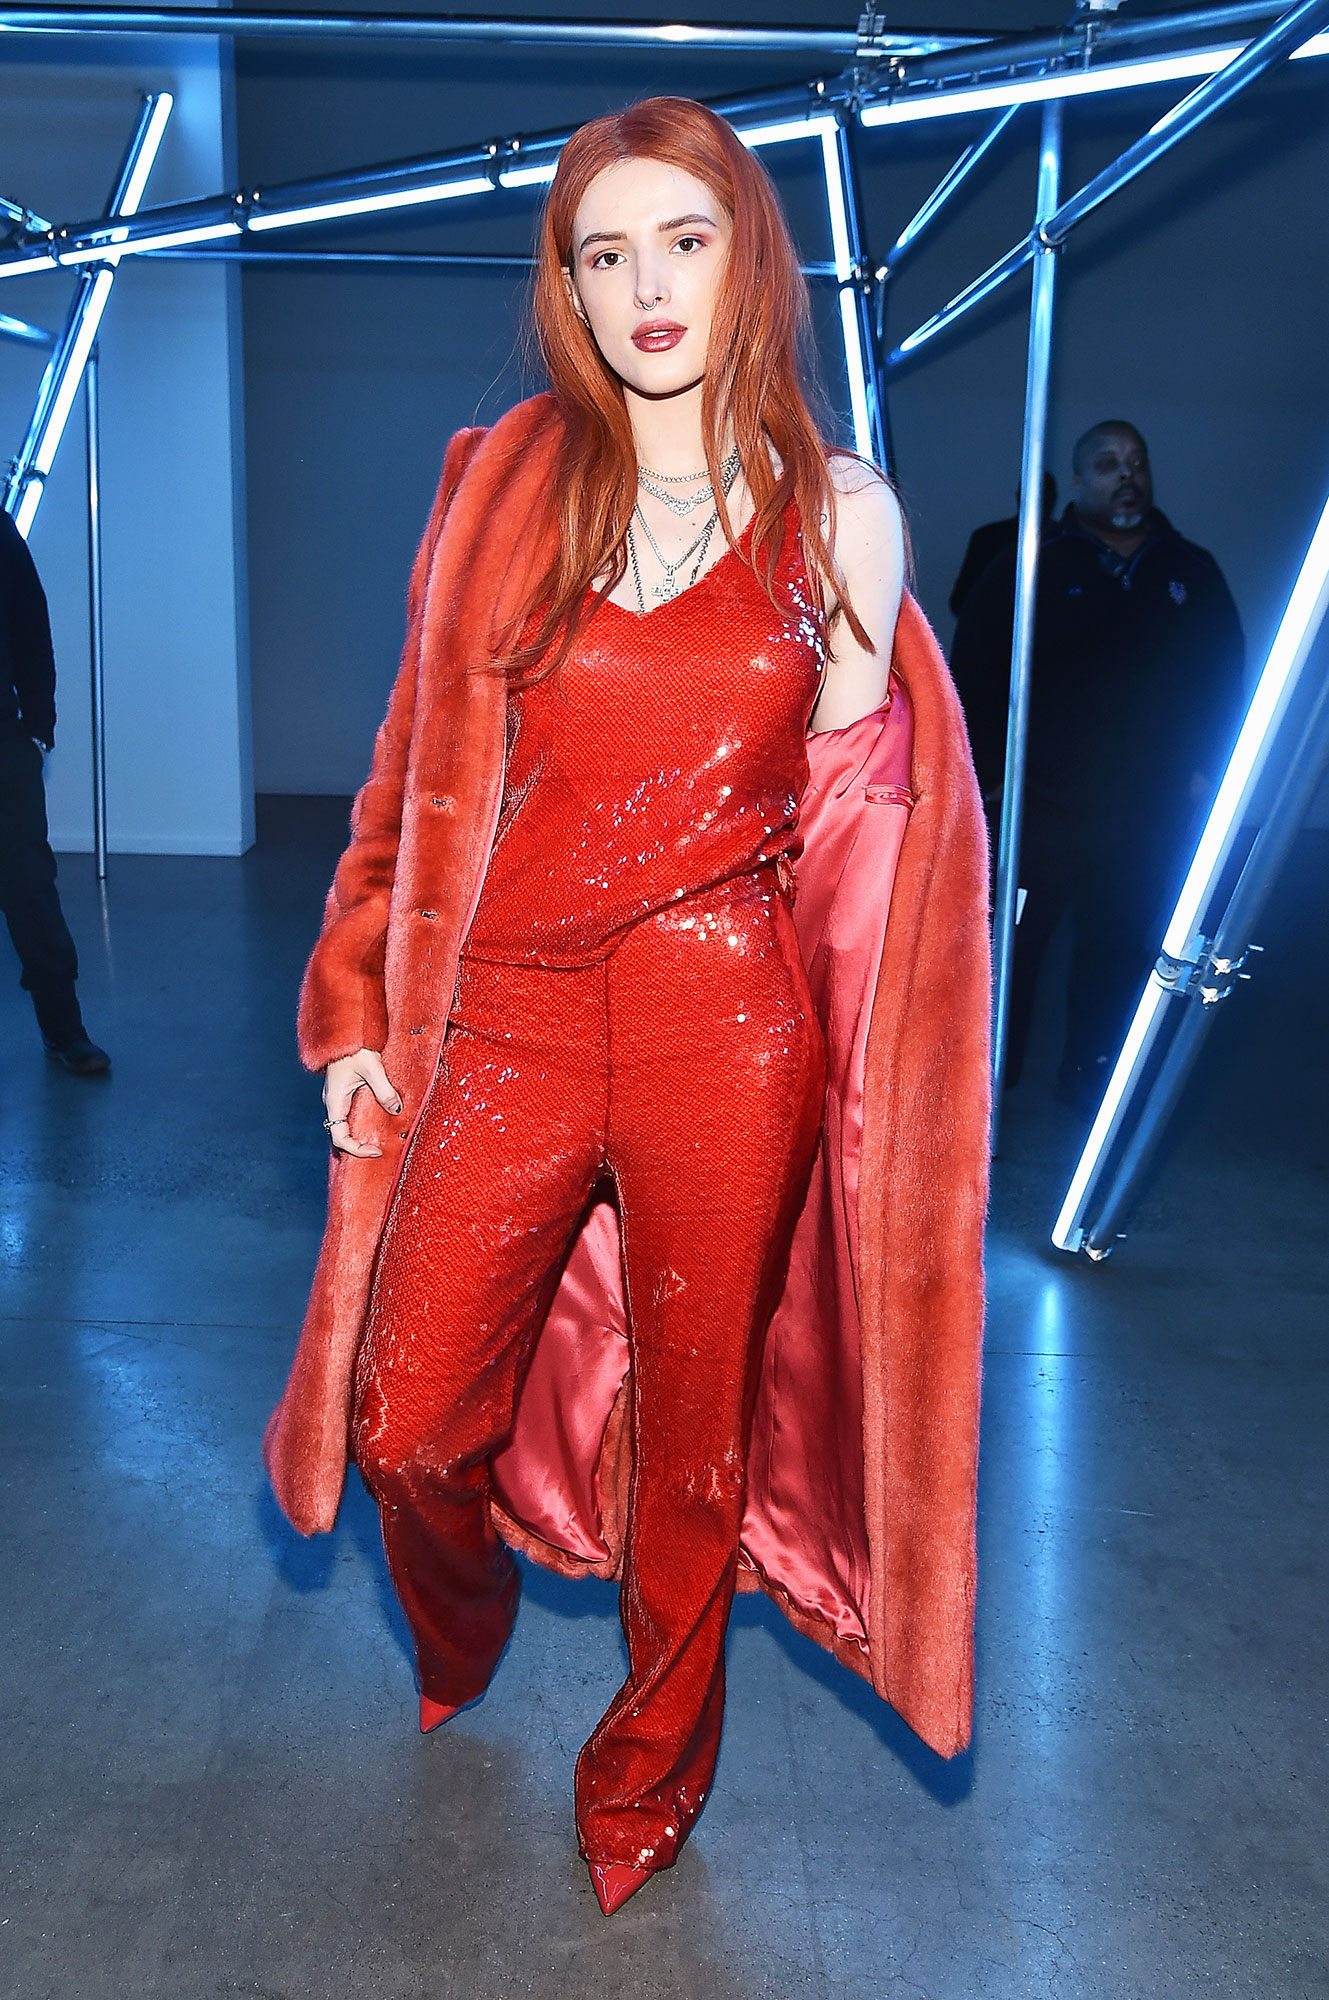 Bella Thorne - Rocking an all-red look, the actress matched her sparkly jumpsuit with pointy heels and a faux fur coat that was as fiery as her hair.